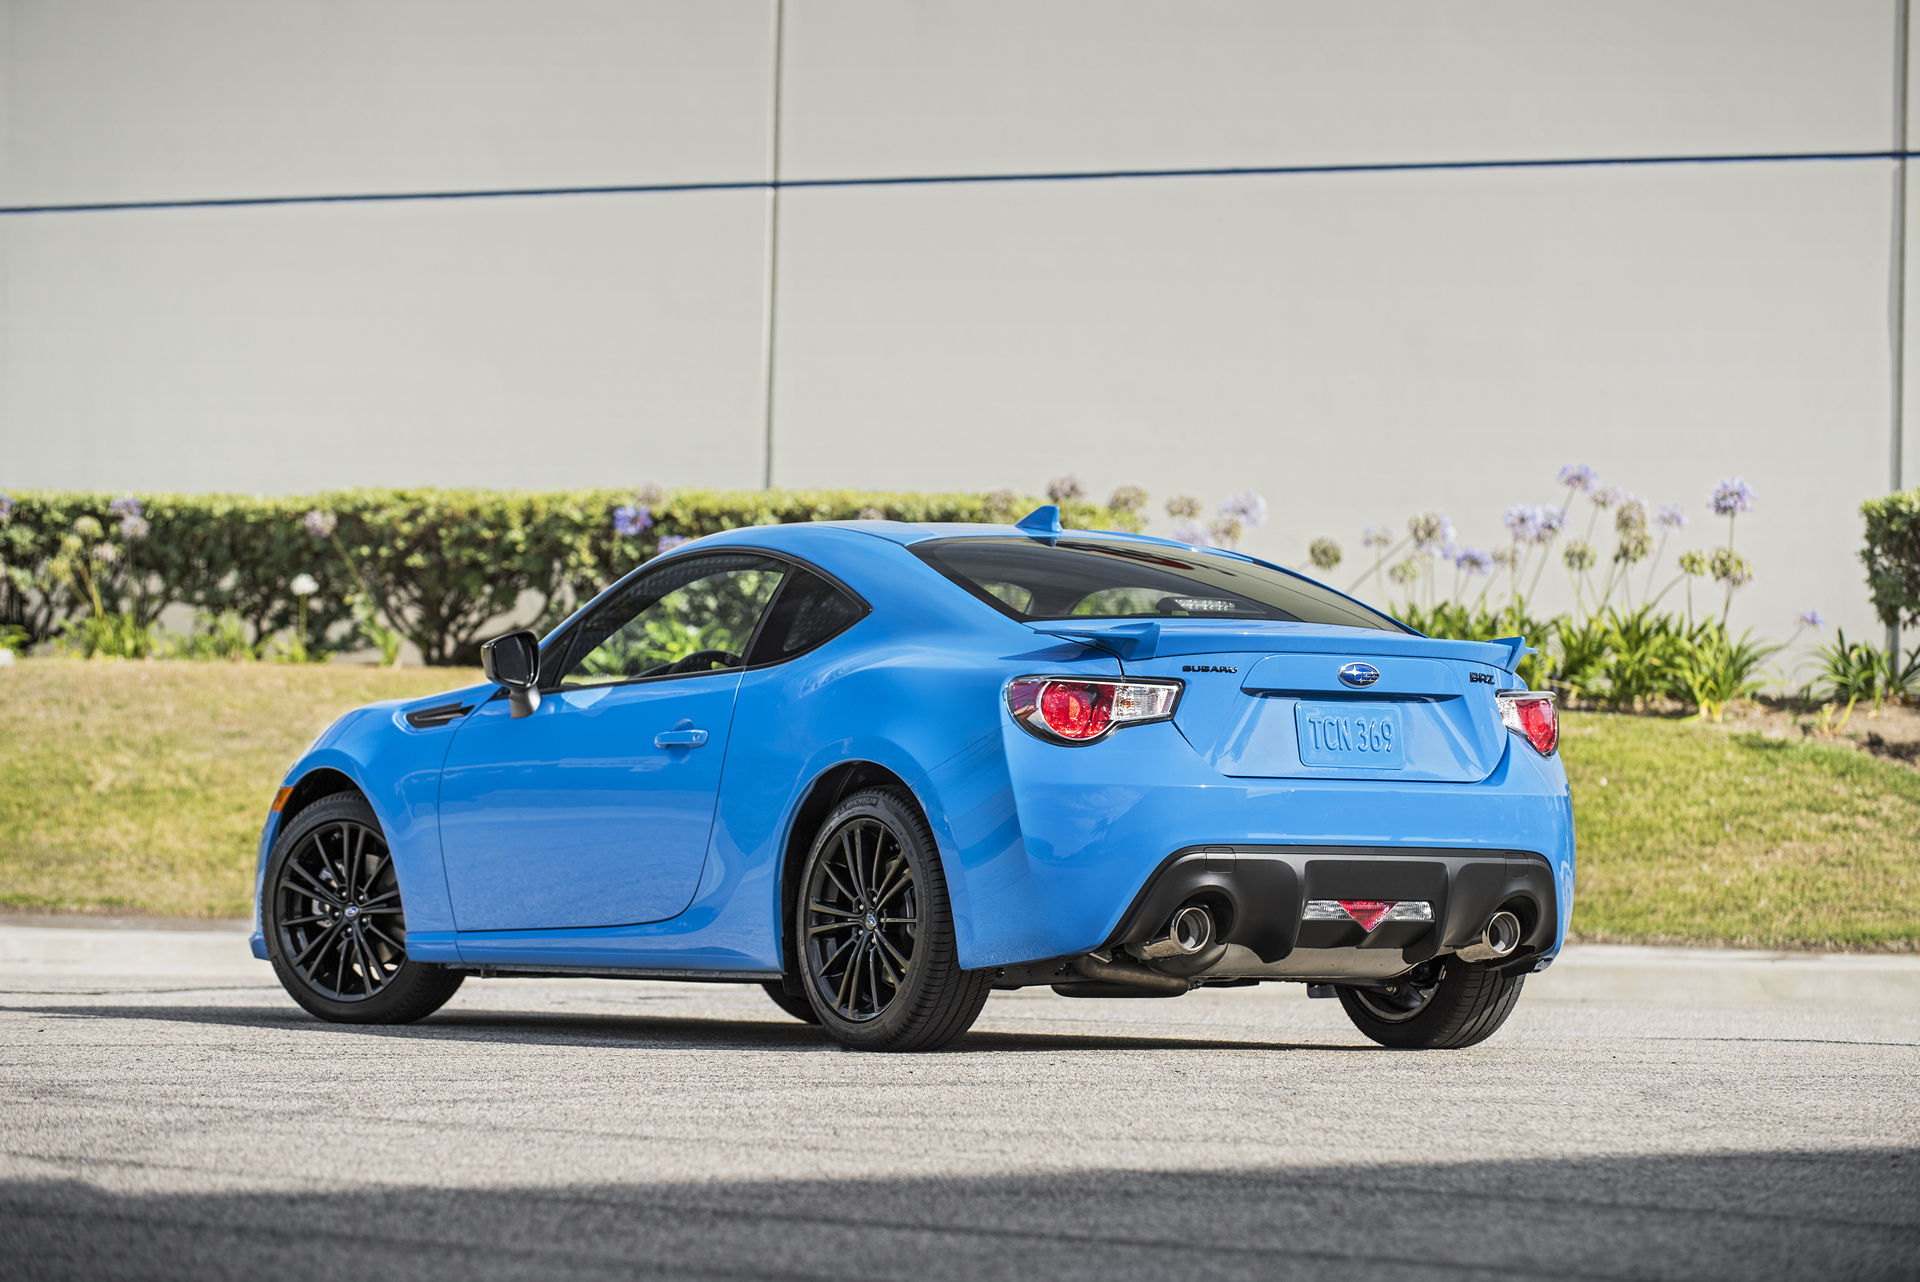 2016 Subaru BRZ Series.HyperBlue © Fuji Heavy Industries, Ltd.